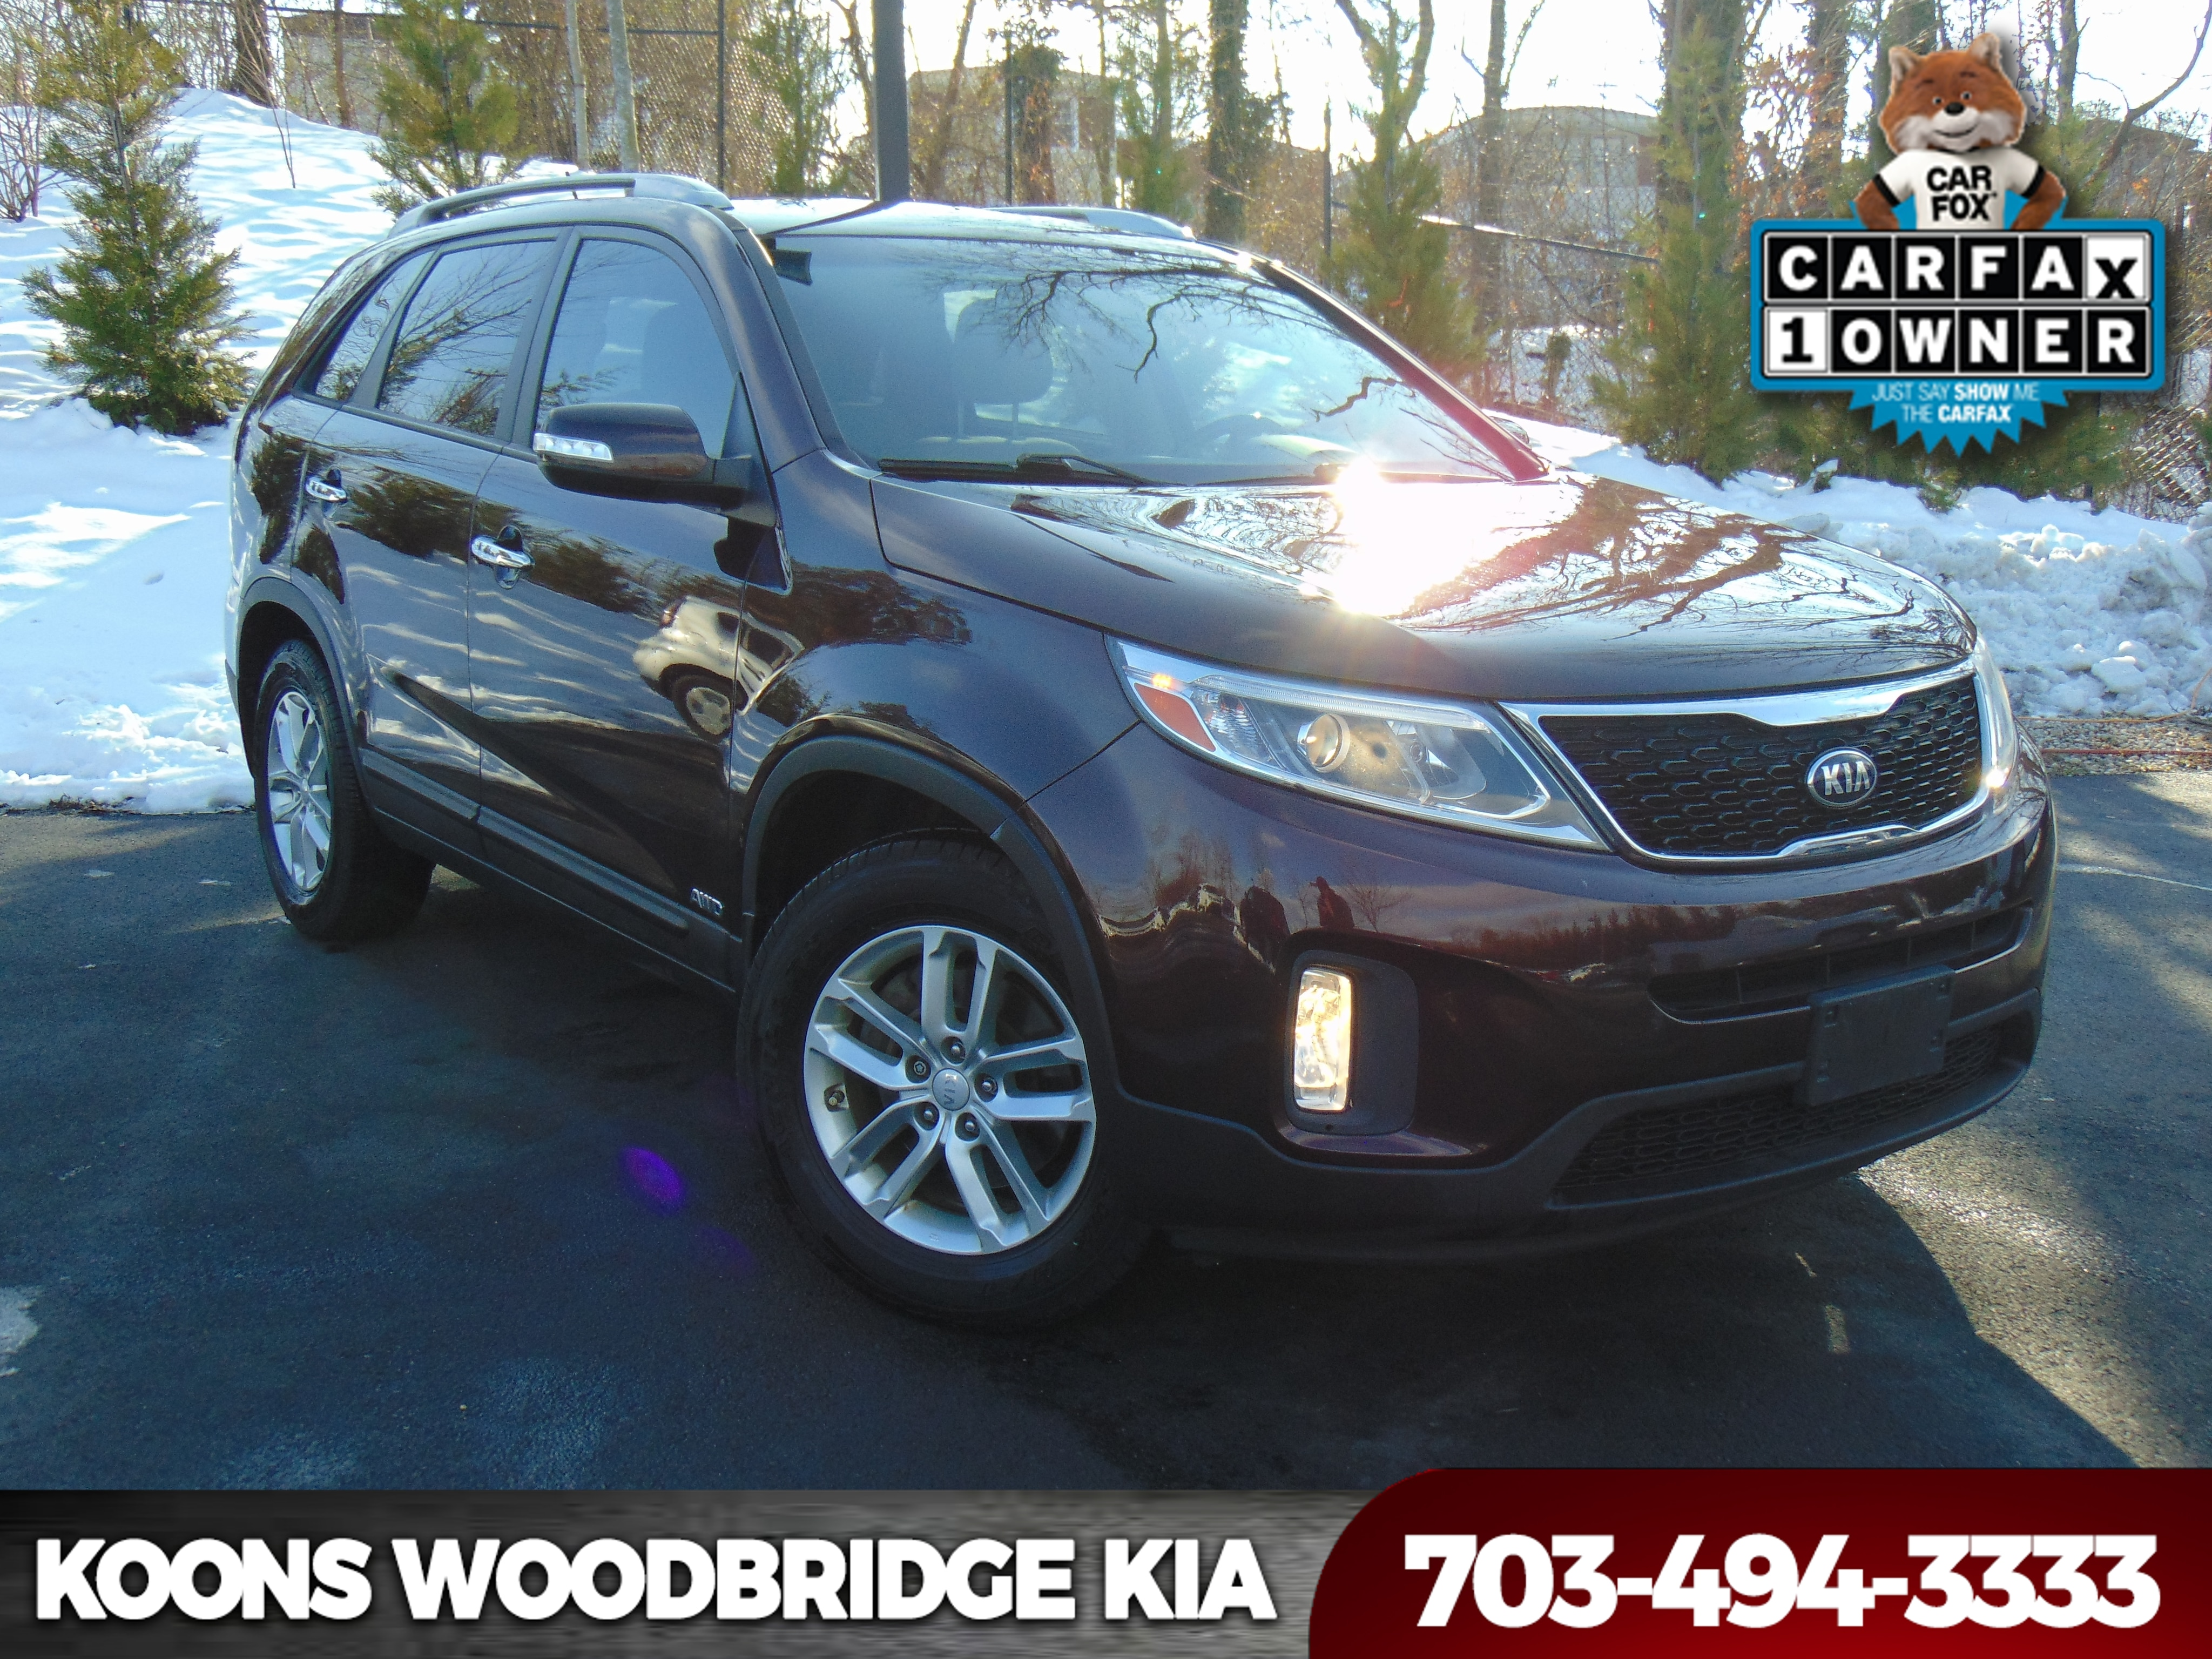 Carfax Used Cars Woodbridge Va Fresh 2015 Kia sorento Lx for Sale Woodbridge Va